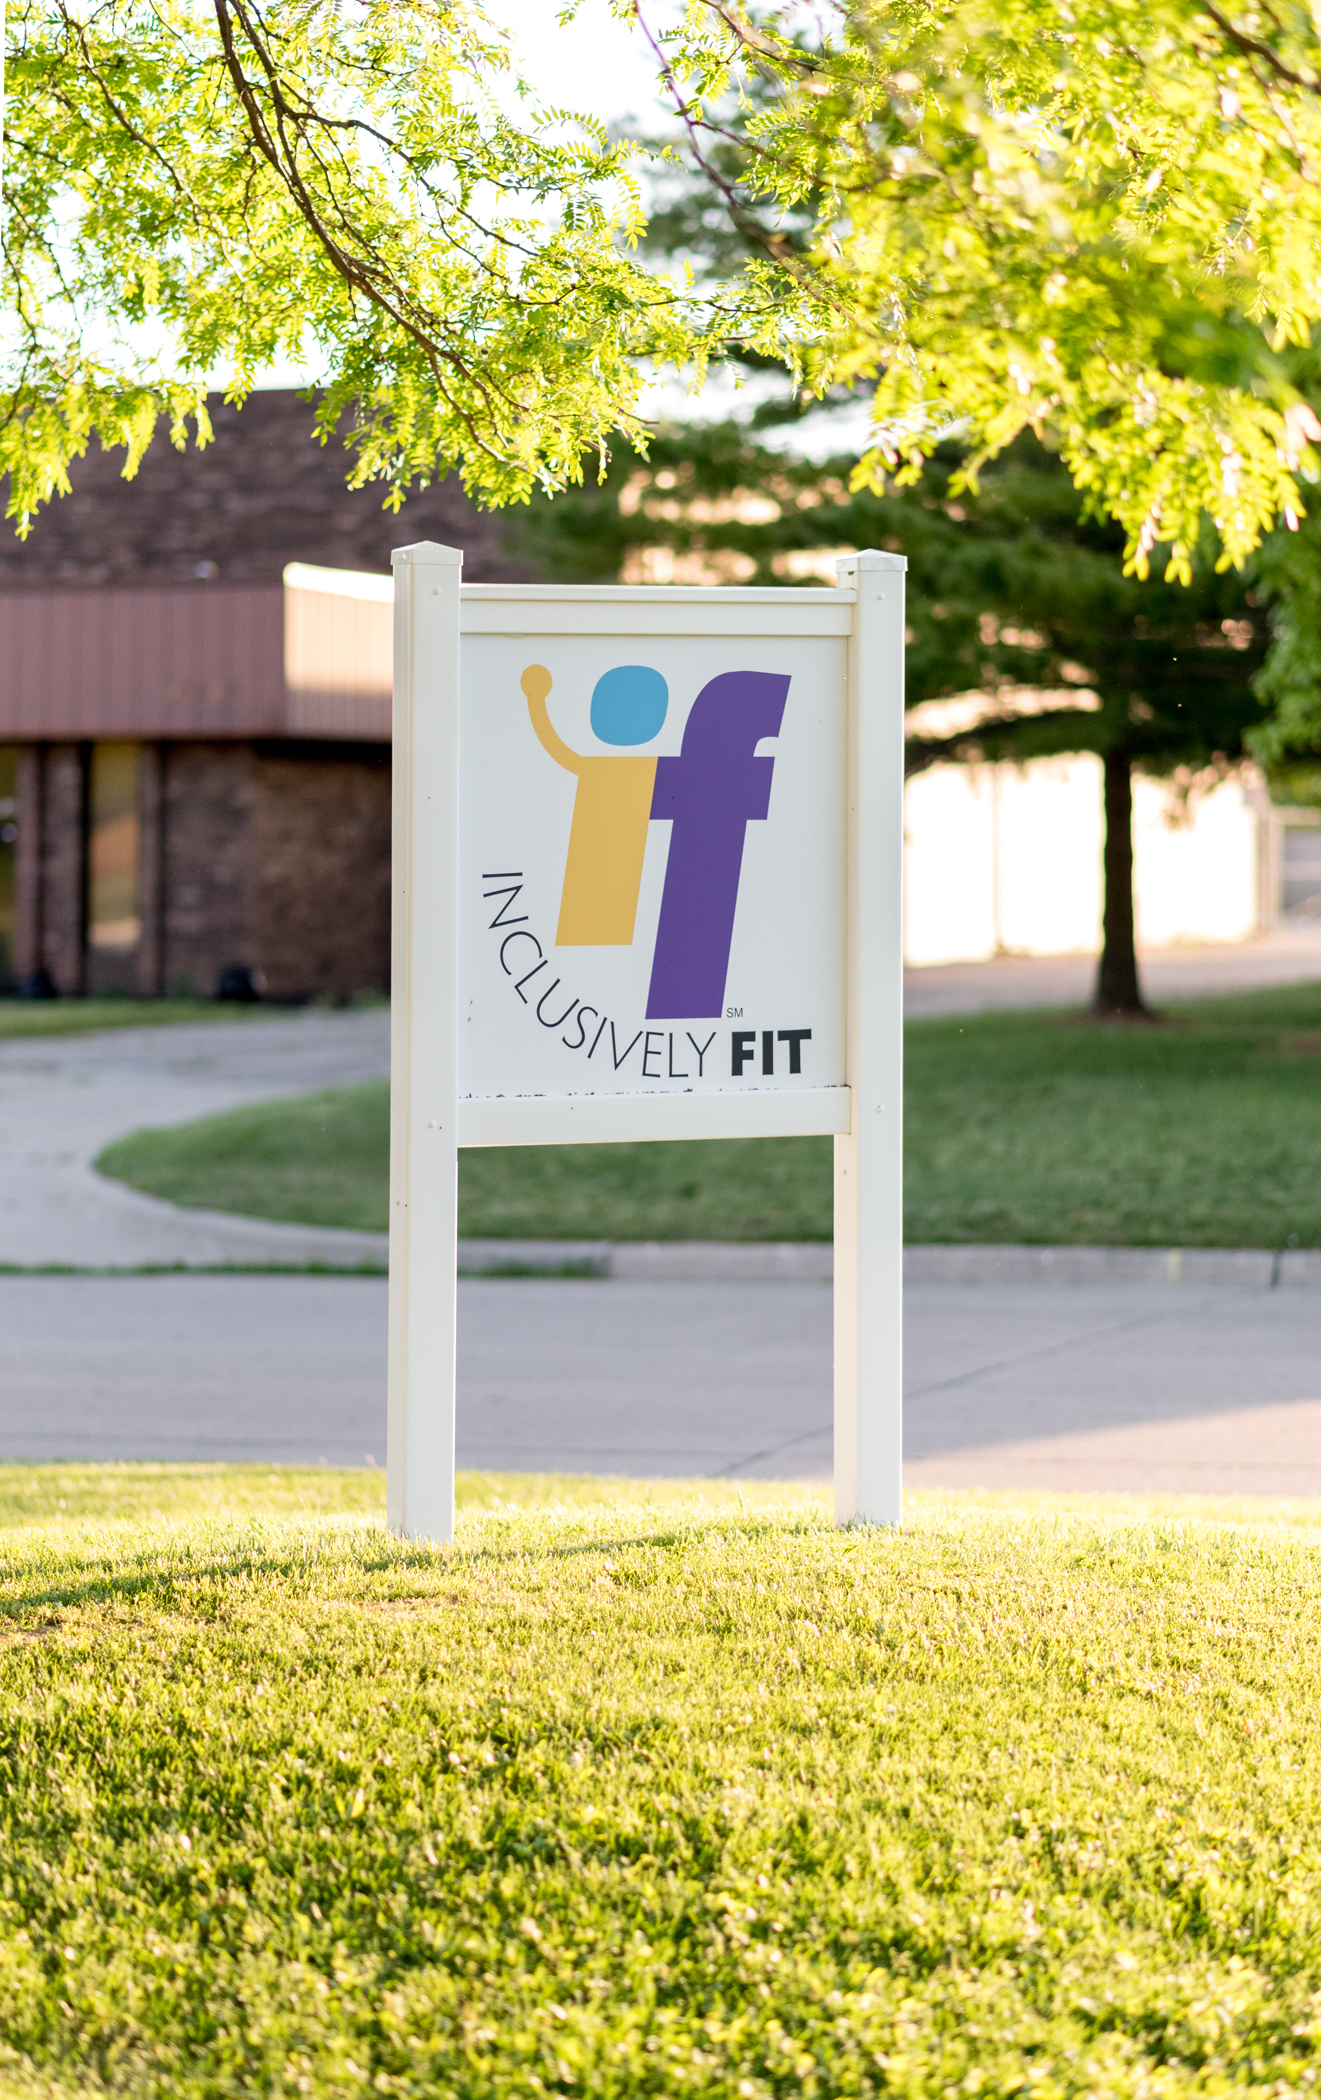 Image of Inclusively Fit sign